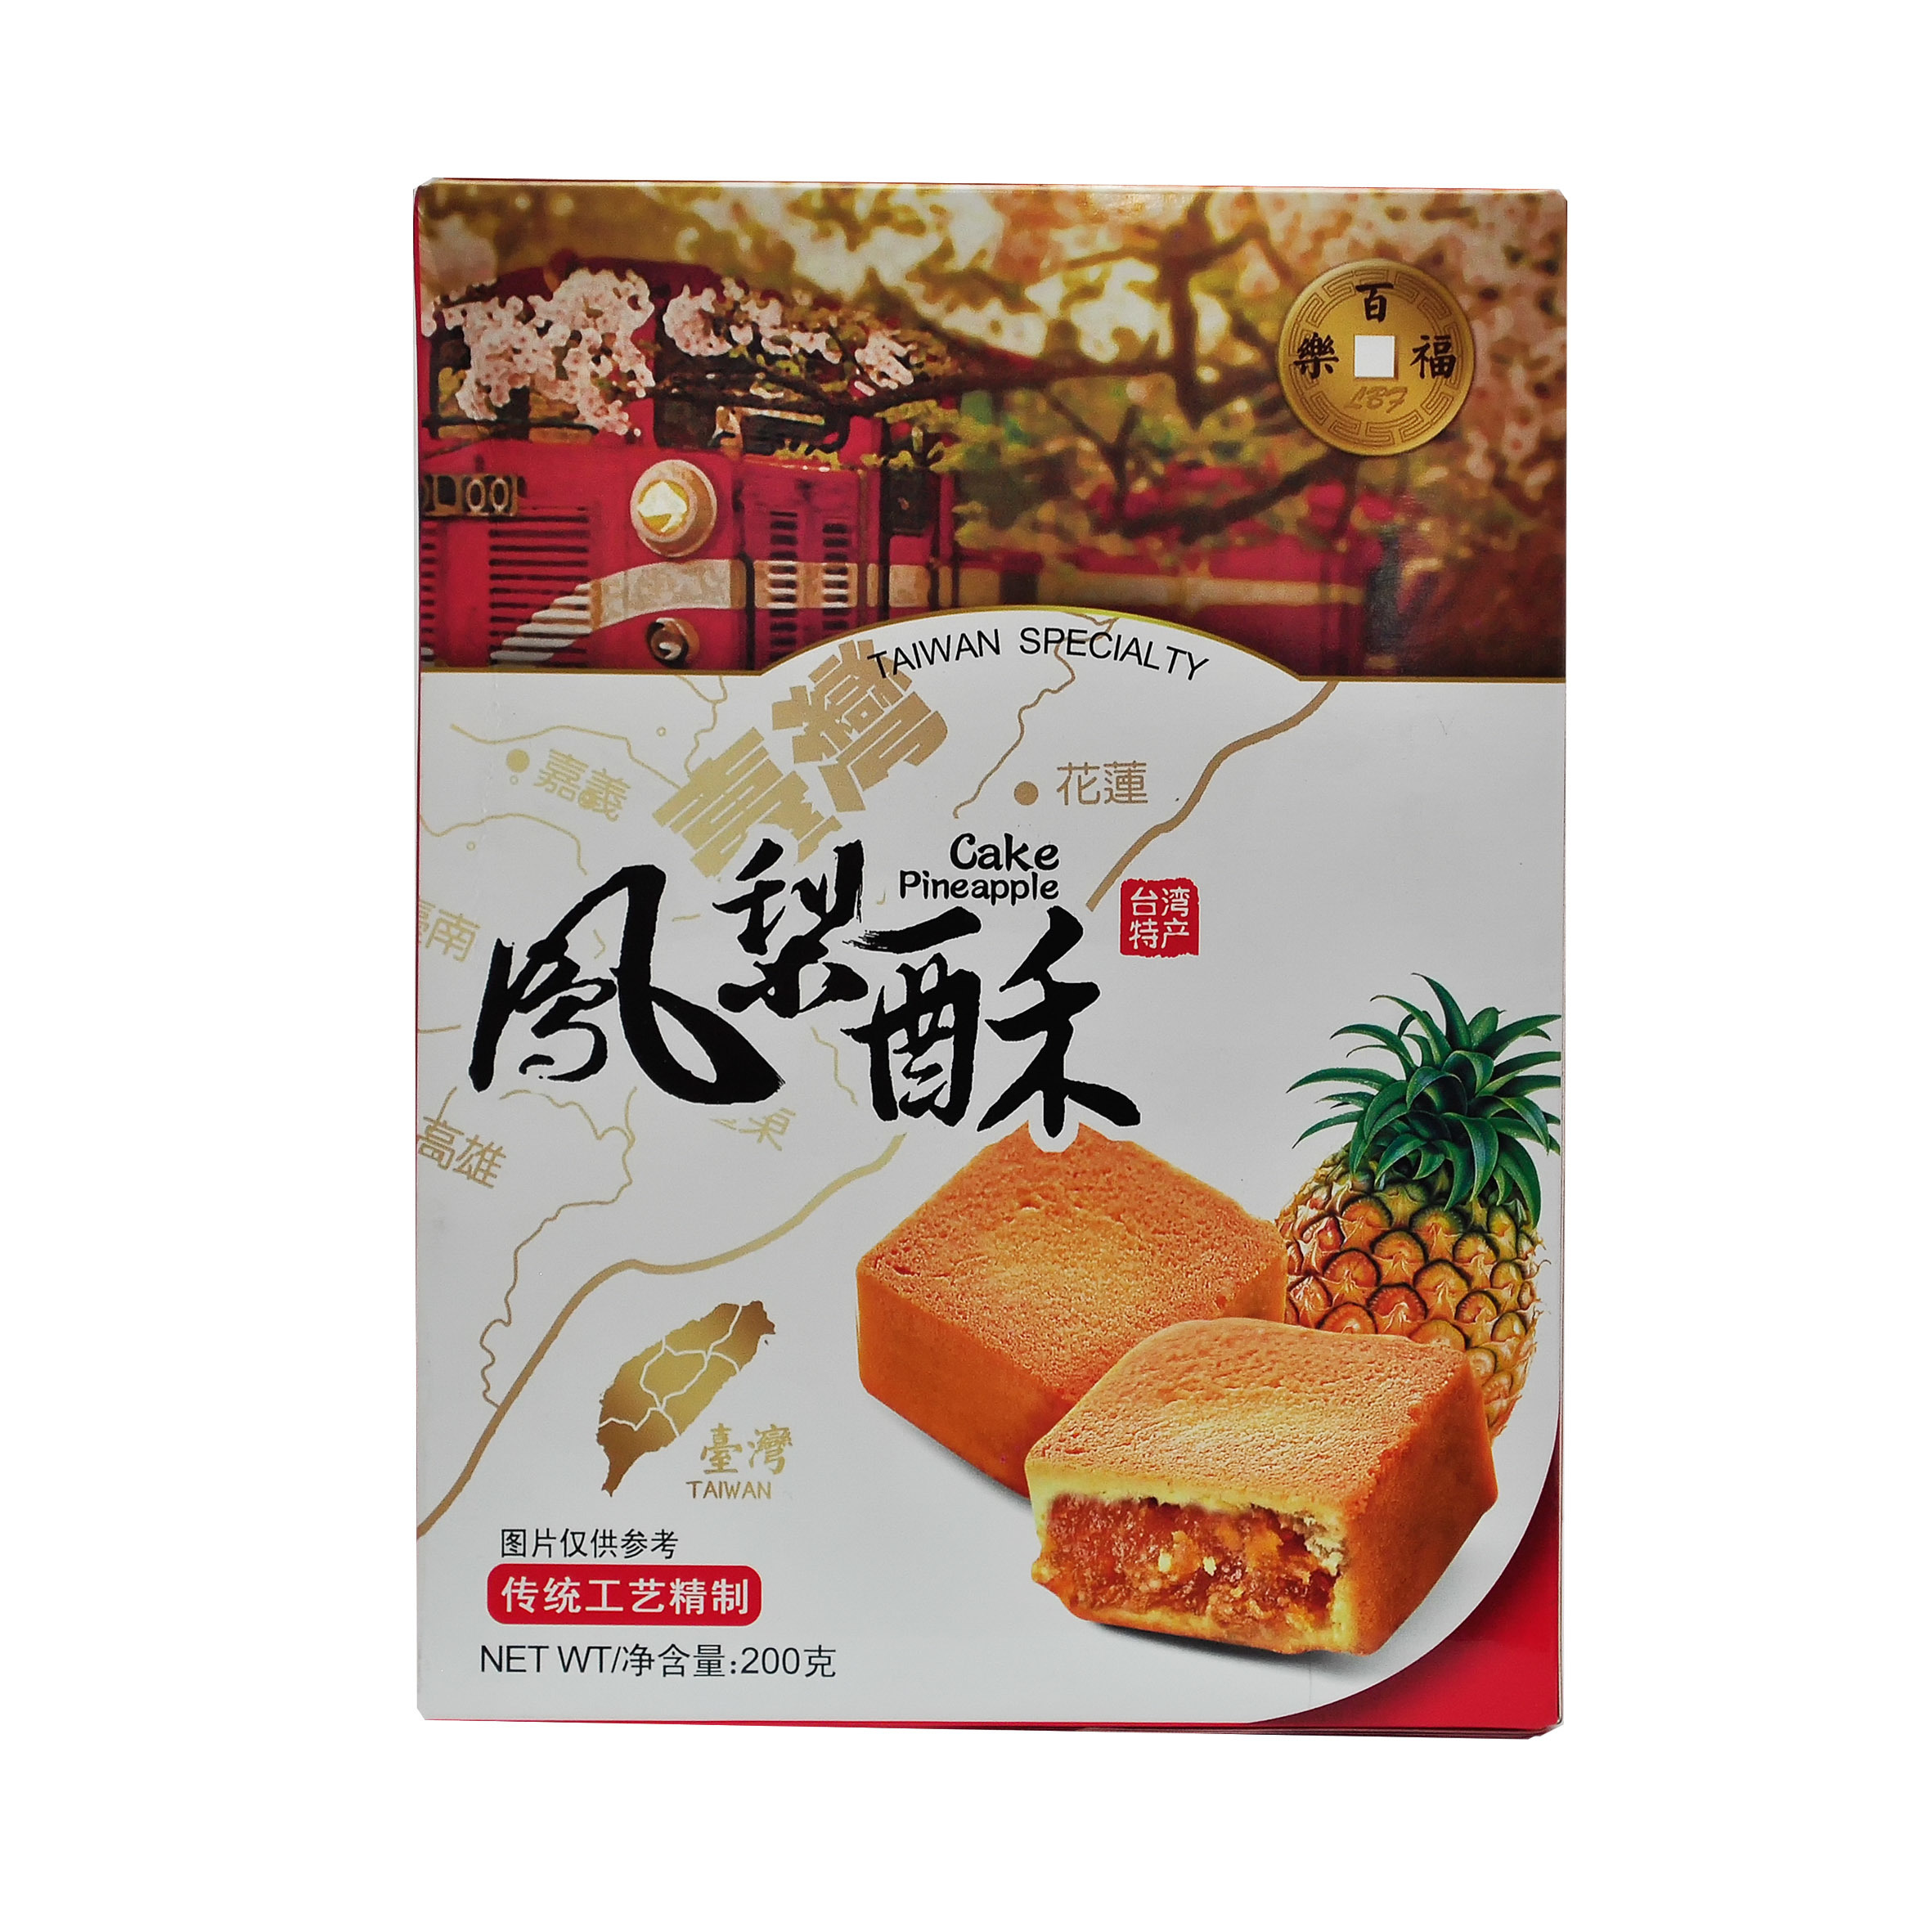 Taiwan Specialty Cake Pineapple Stand Front.jpg